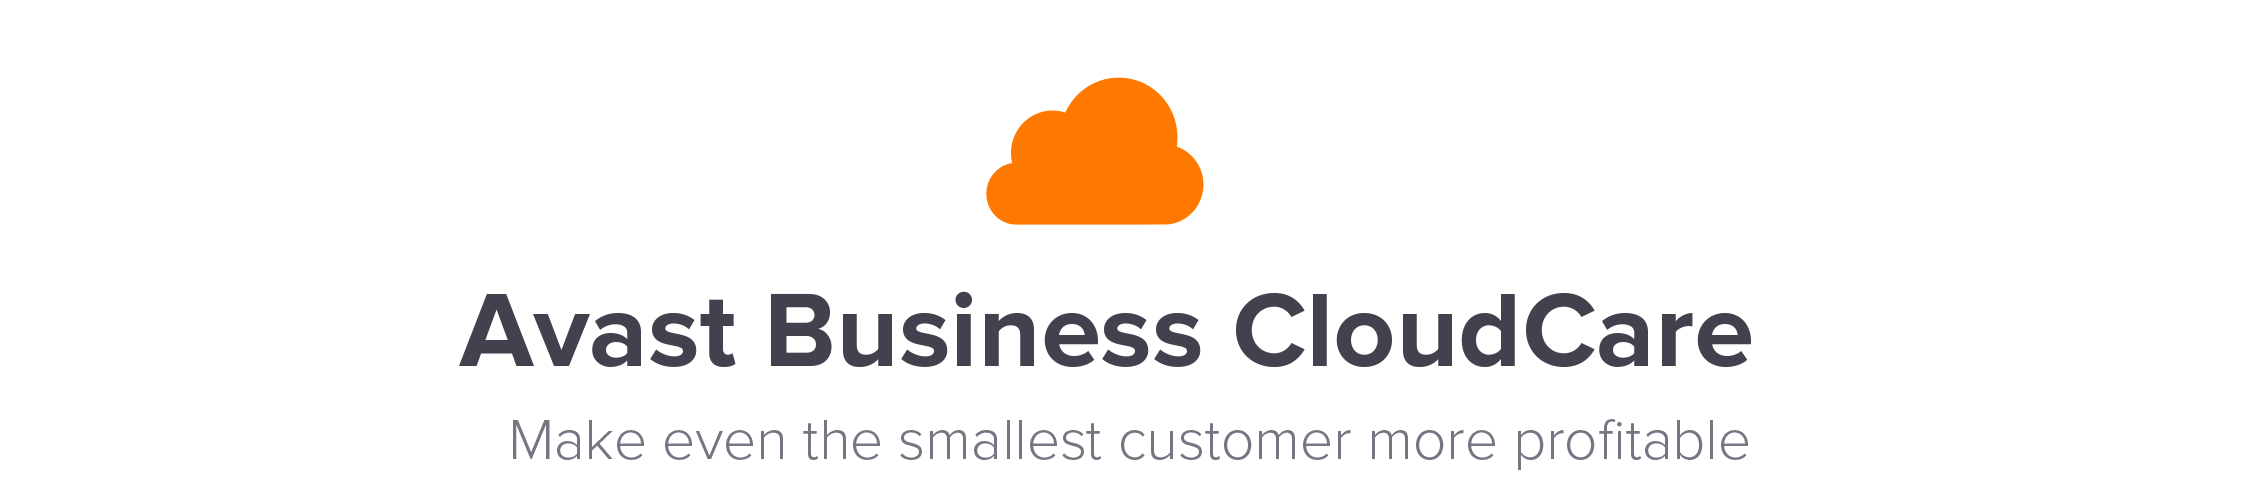 cloudcare banner